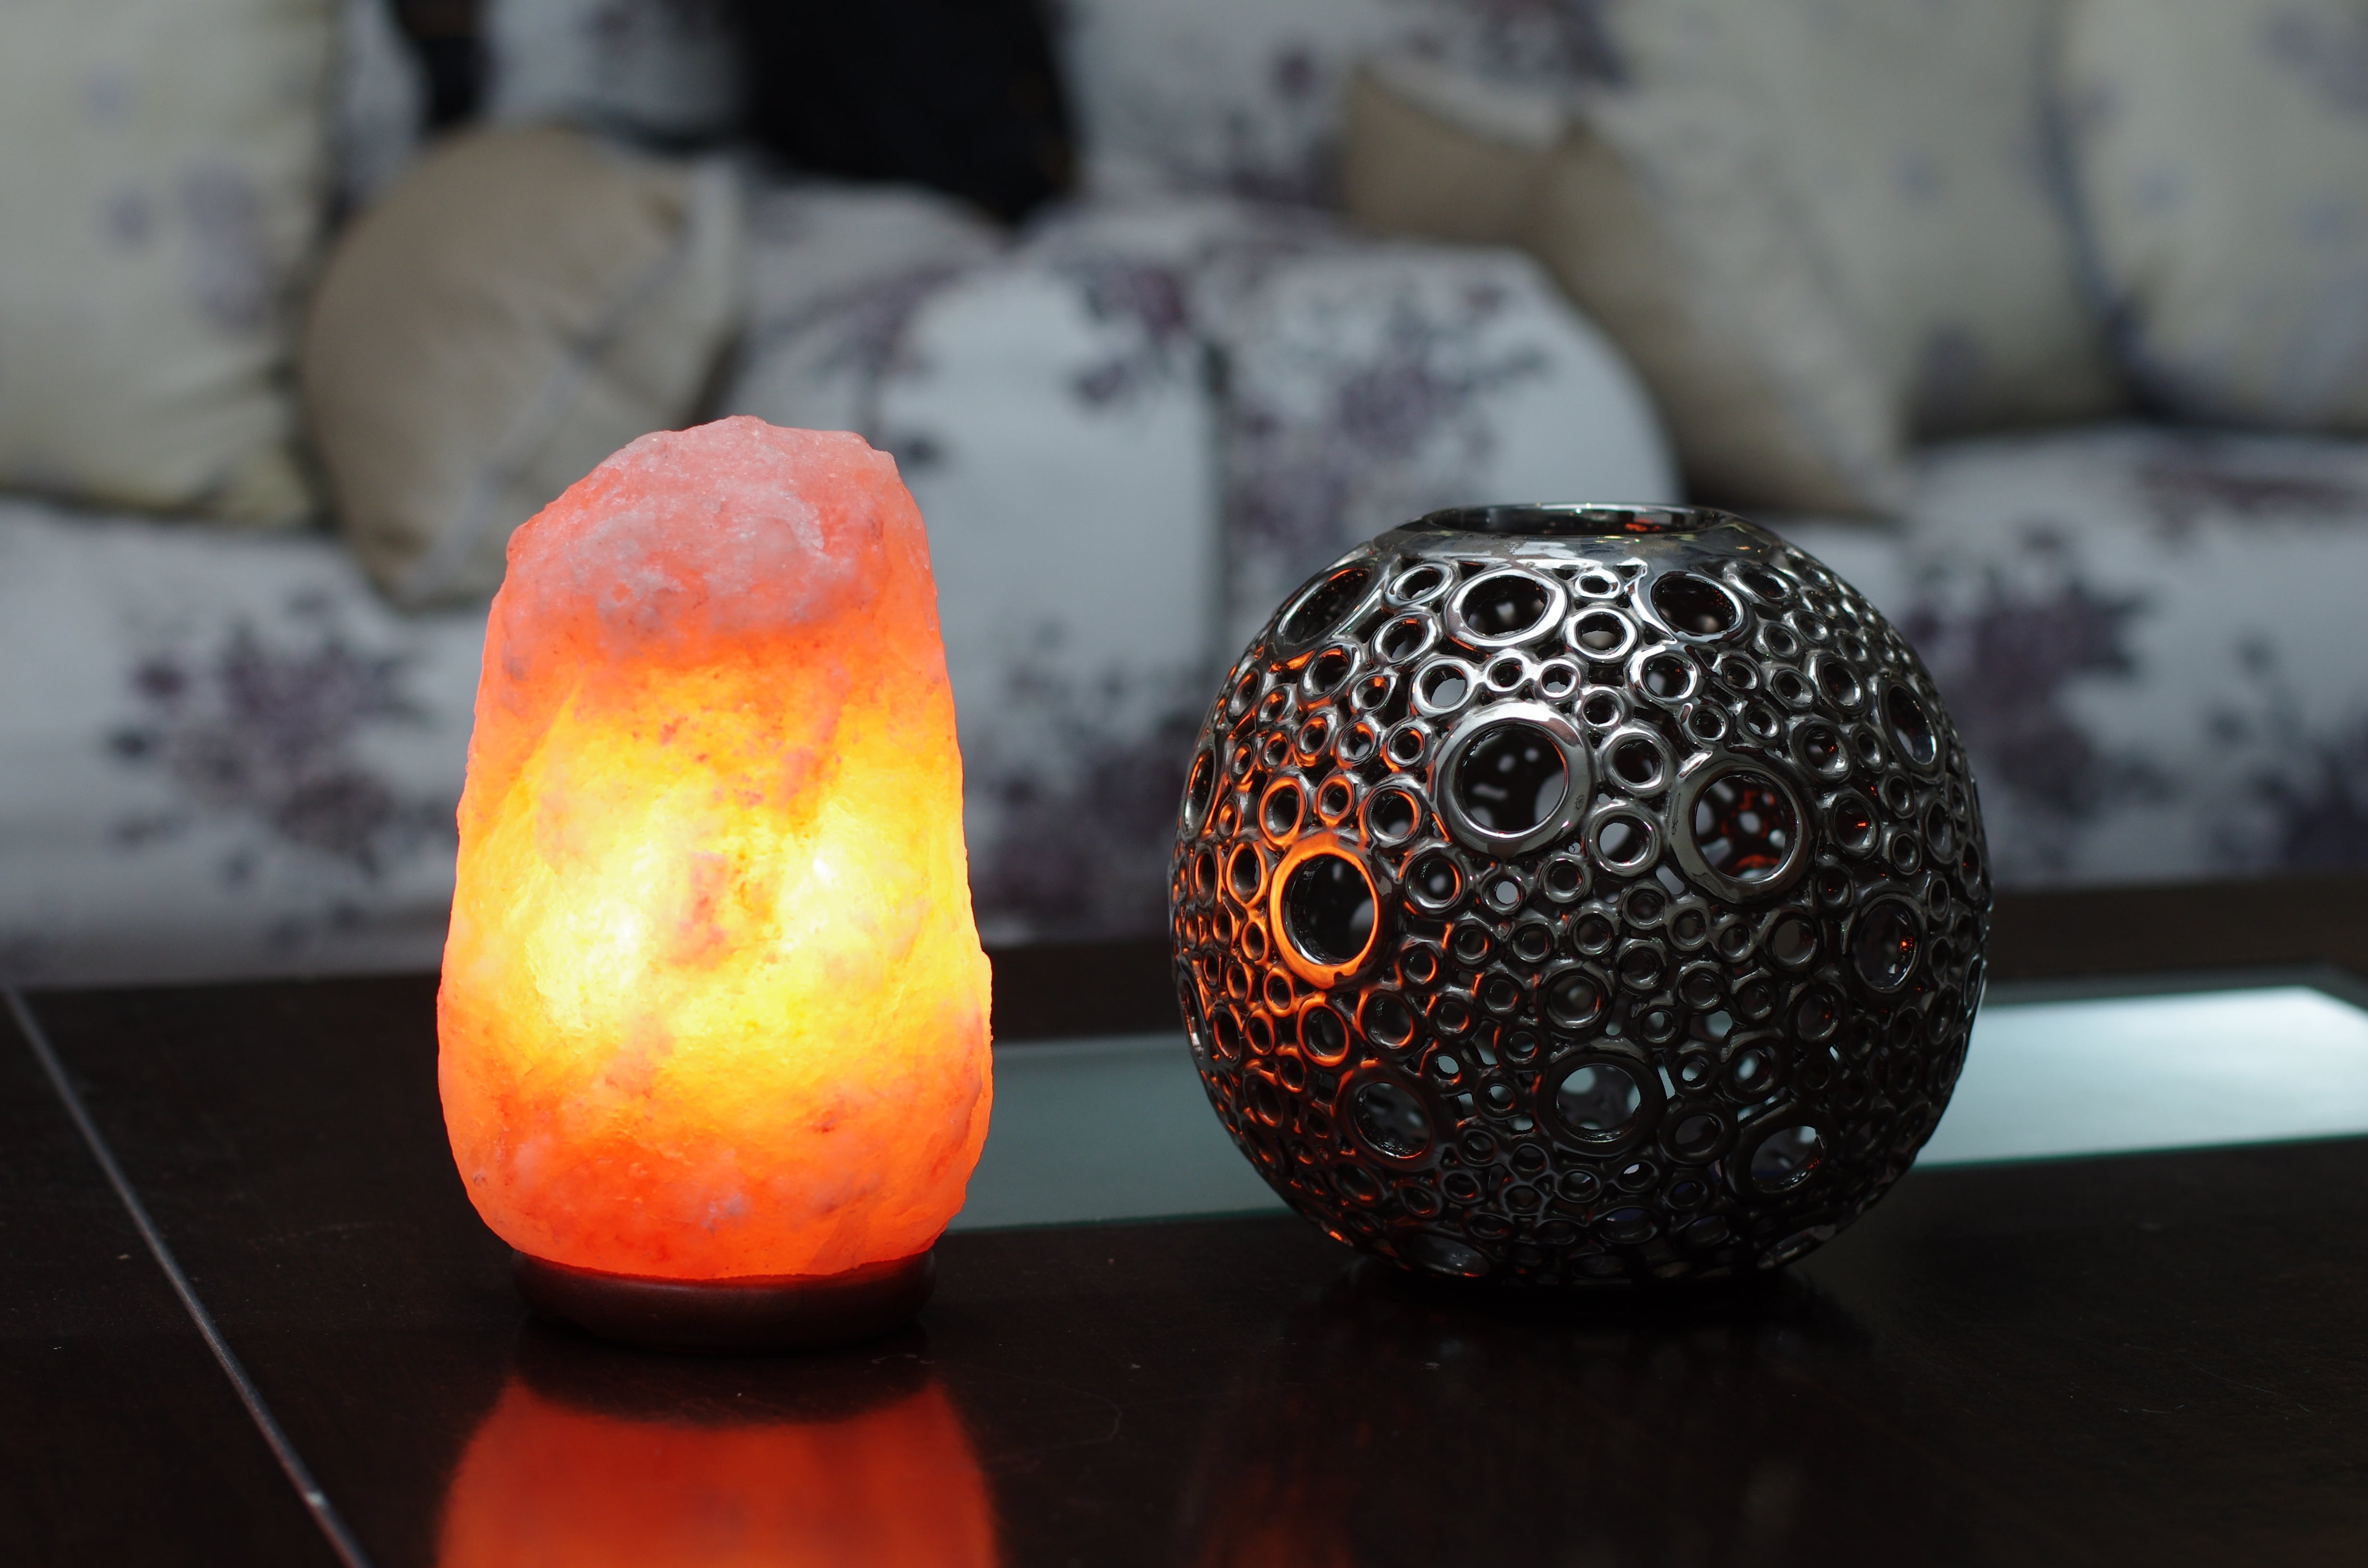 salt lamp leaking water